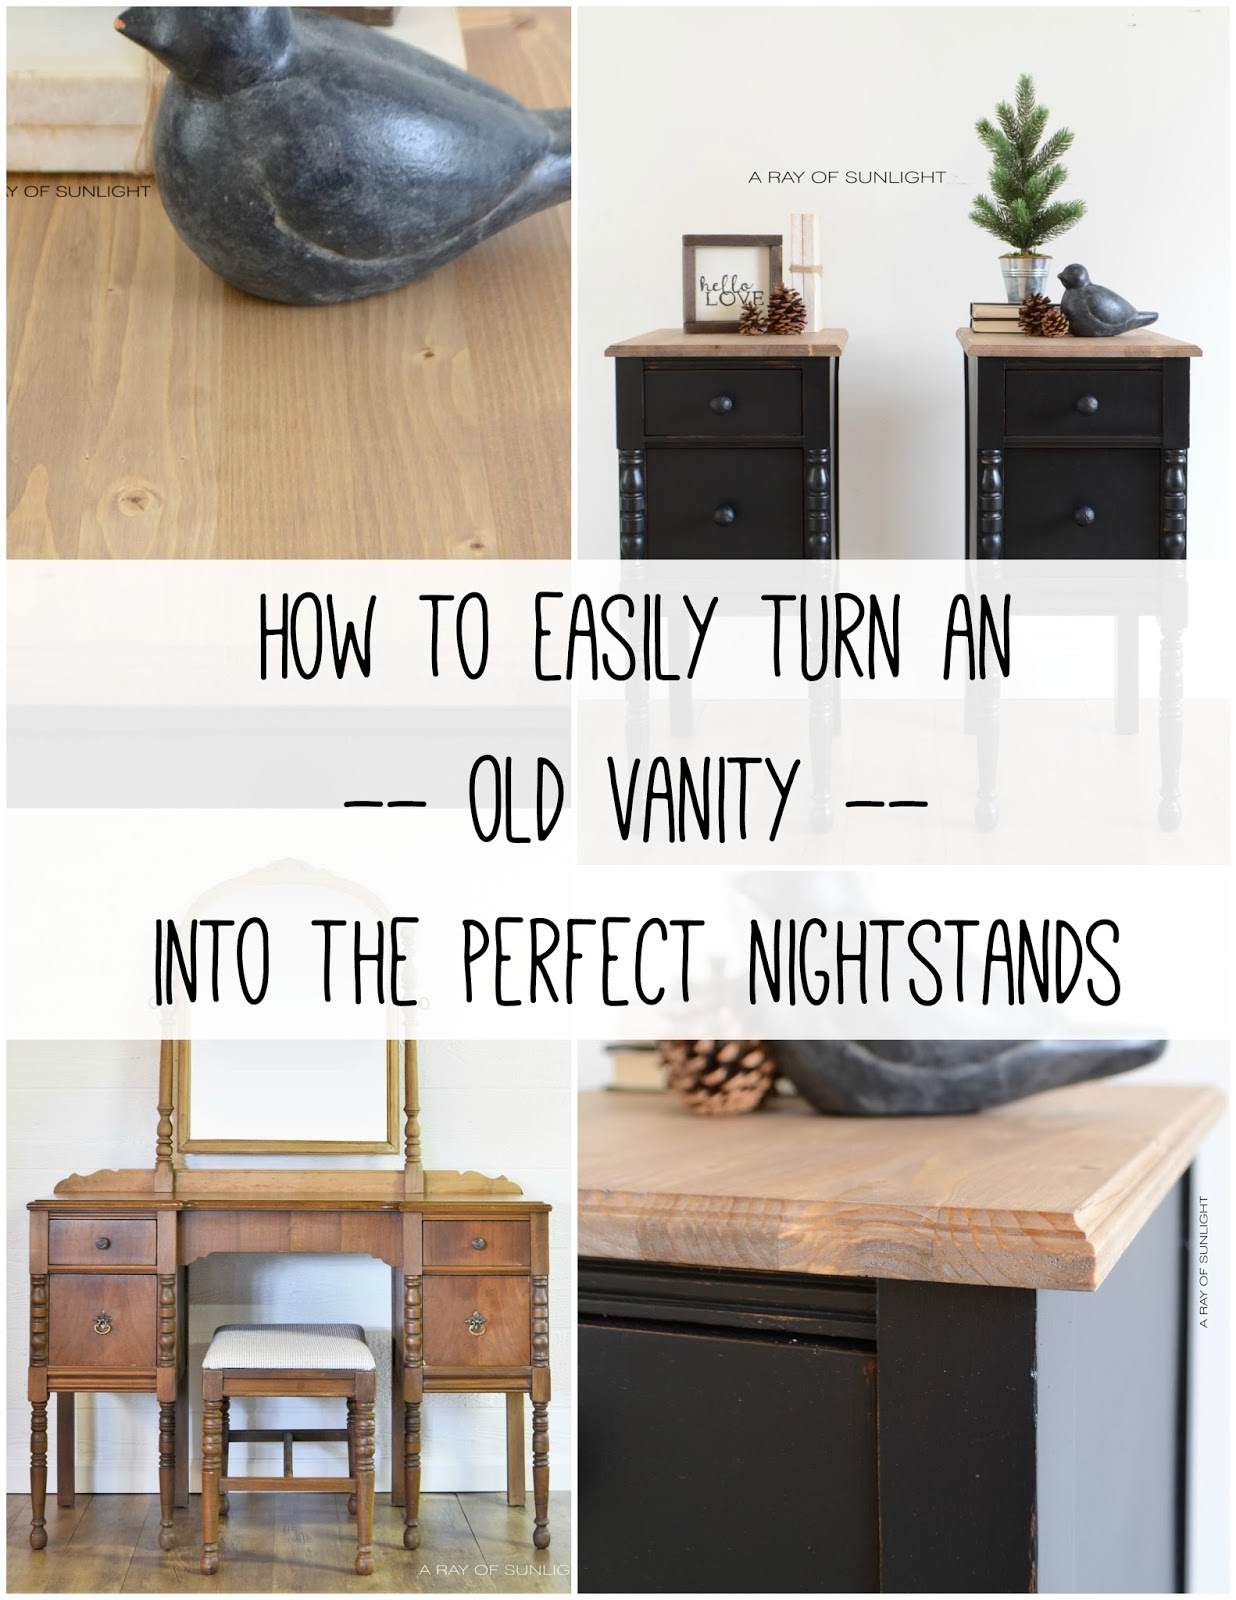 How to easily turn a vanity into the perfect tall and skinny nightstands! These black vintage farmhouse nightstands with rustic tops are perfect! Made by A Ray of Sunlight in Country Chic Paint's Liquorice